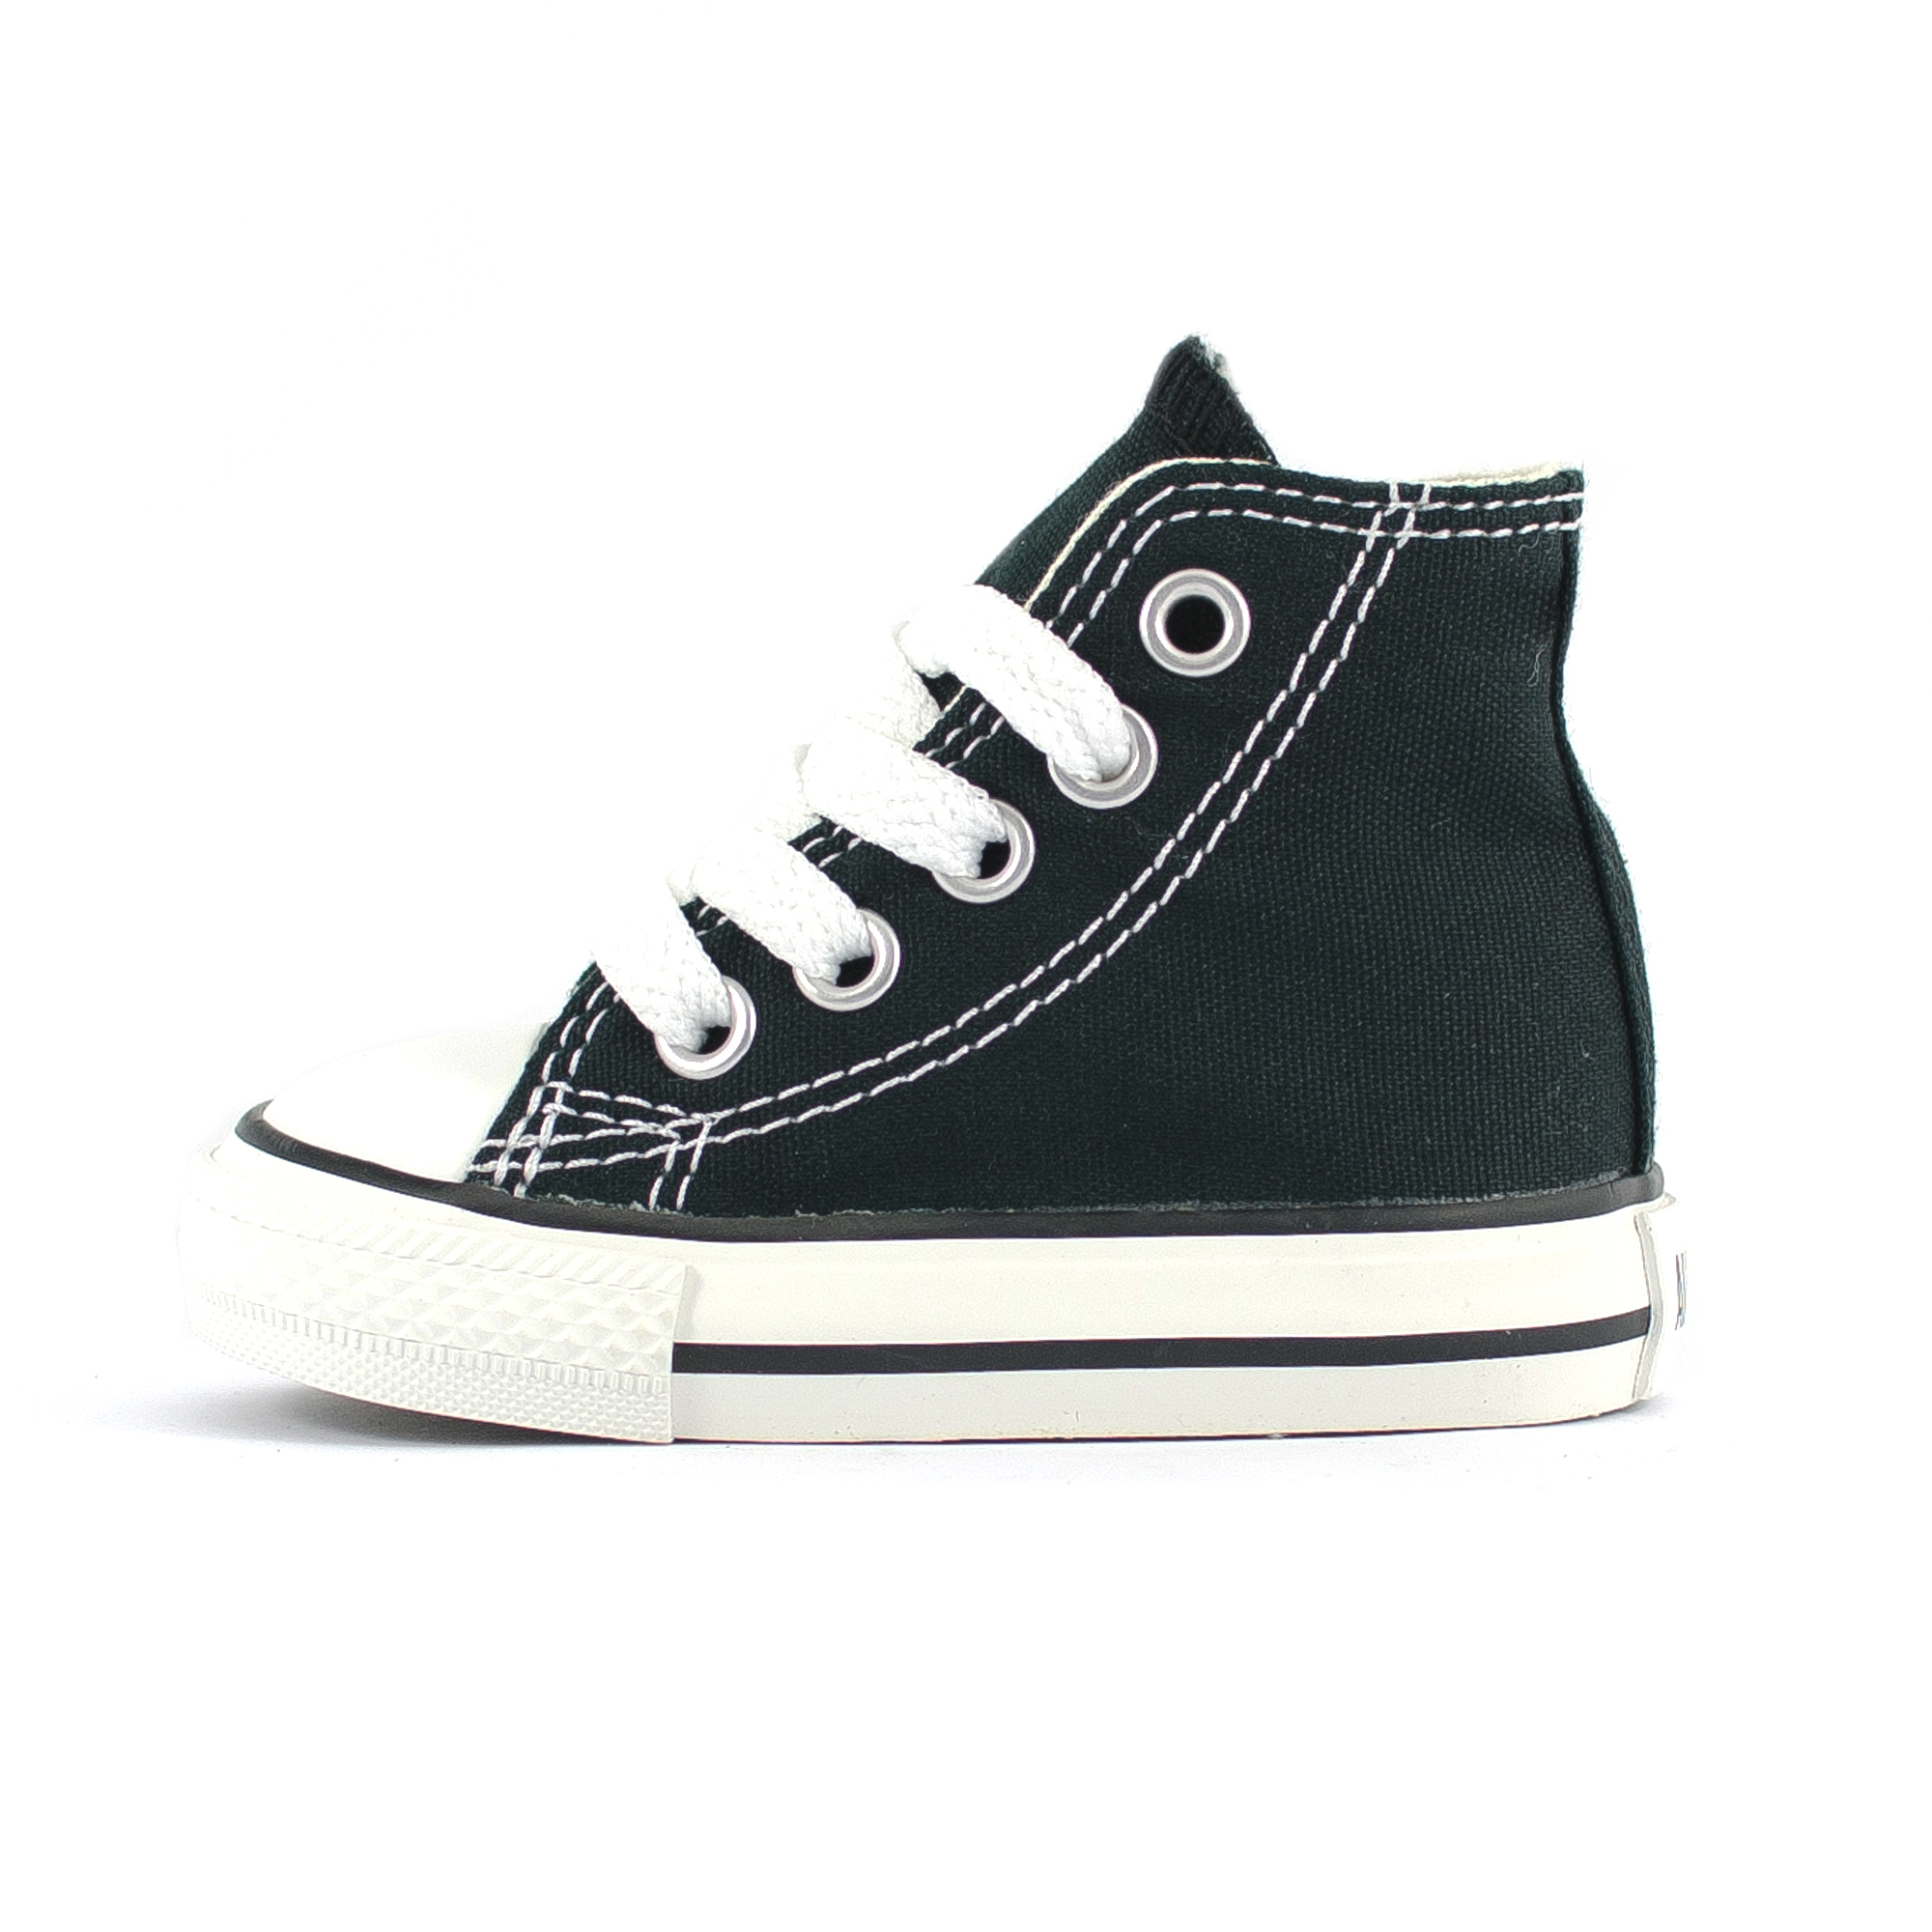 kinder kleinkinder converse all star hi chuck taylor. Black Bedroom Furniture Sets. Home Design Ideas